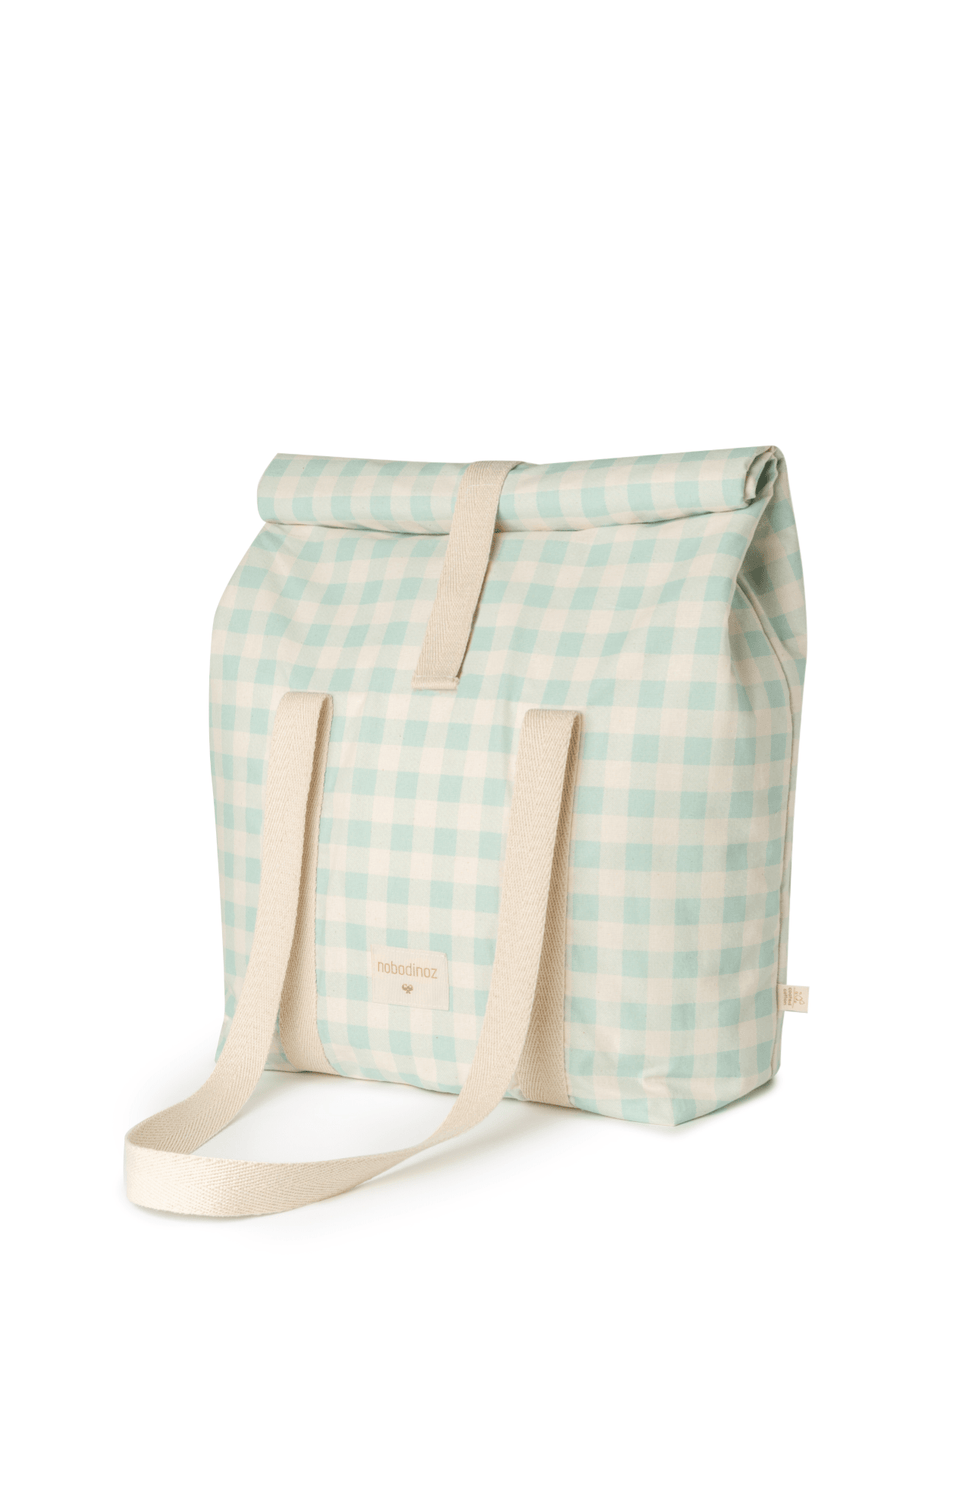 NOBODINOZ SUNSHINE FAMILY COOLER BAG - OPALINE VICHY